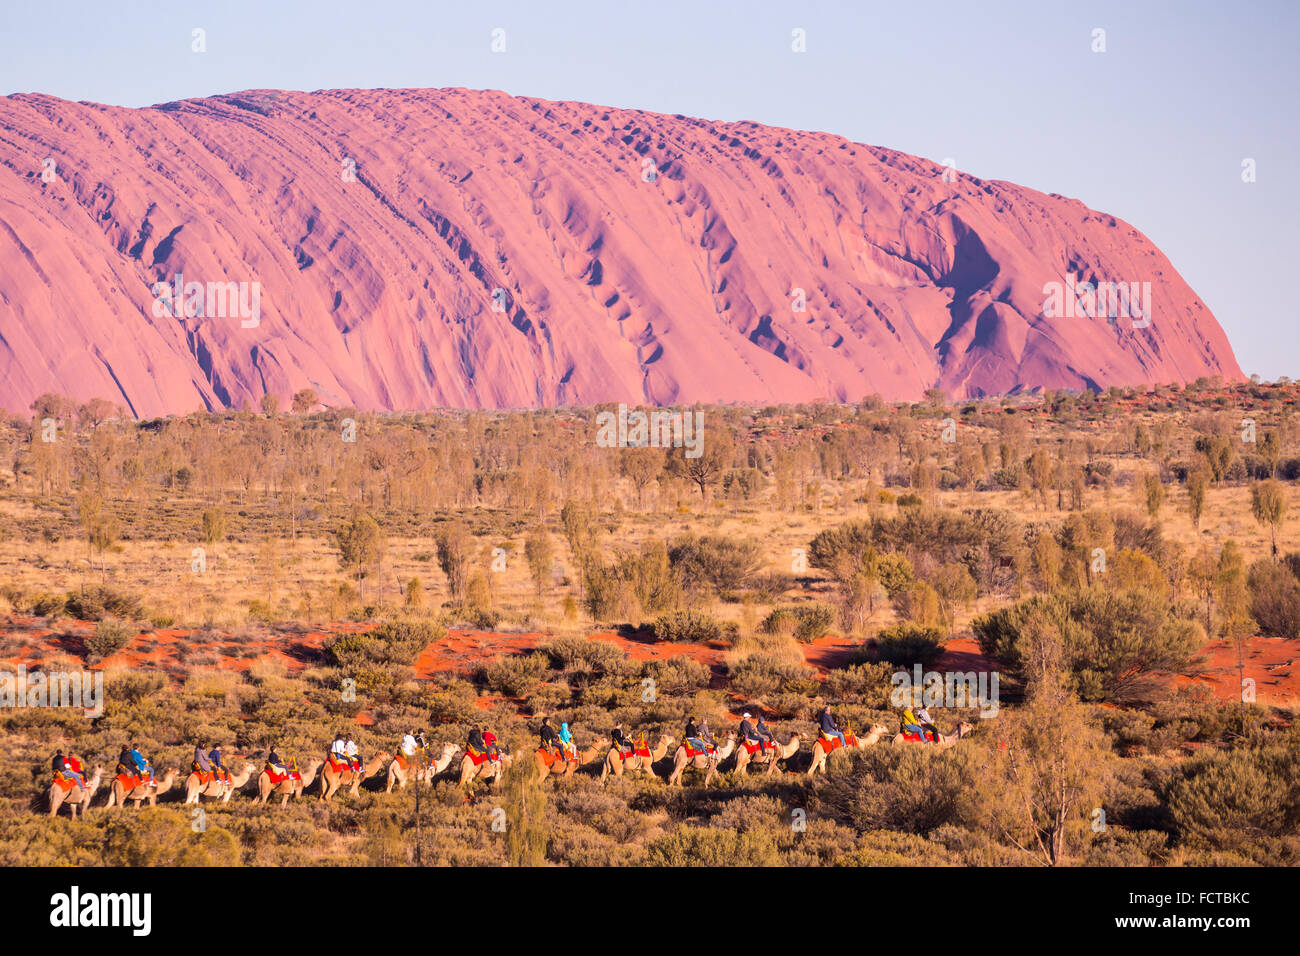 Majestic Uluru and a camel tour on a clear winter's evening sunset in the Northern Territory, Australia - Stock Image